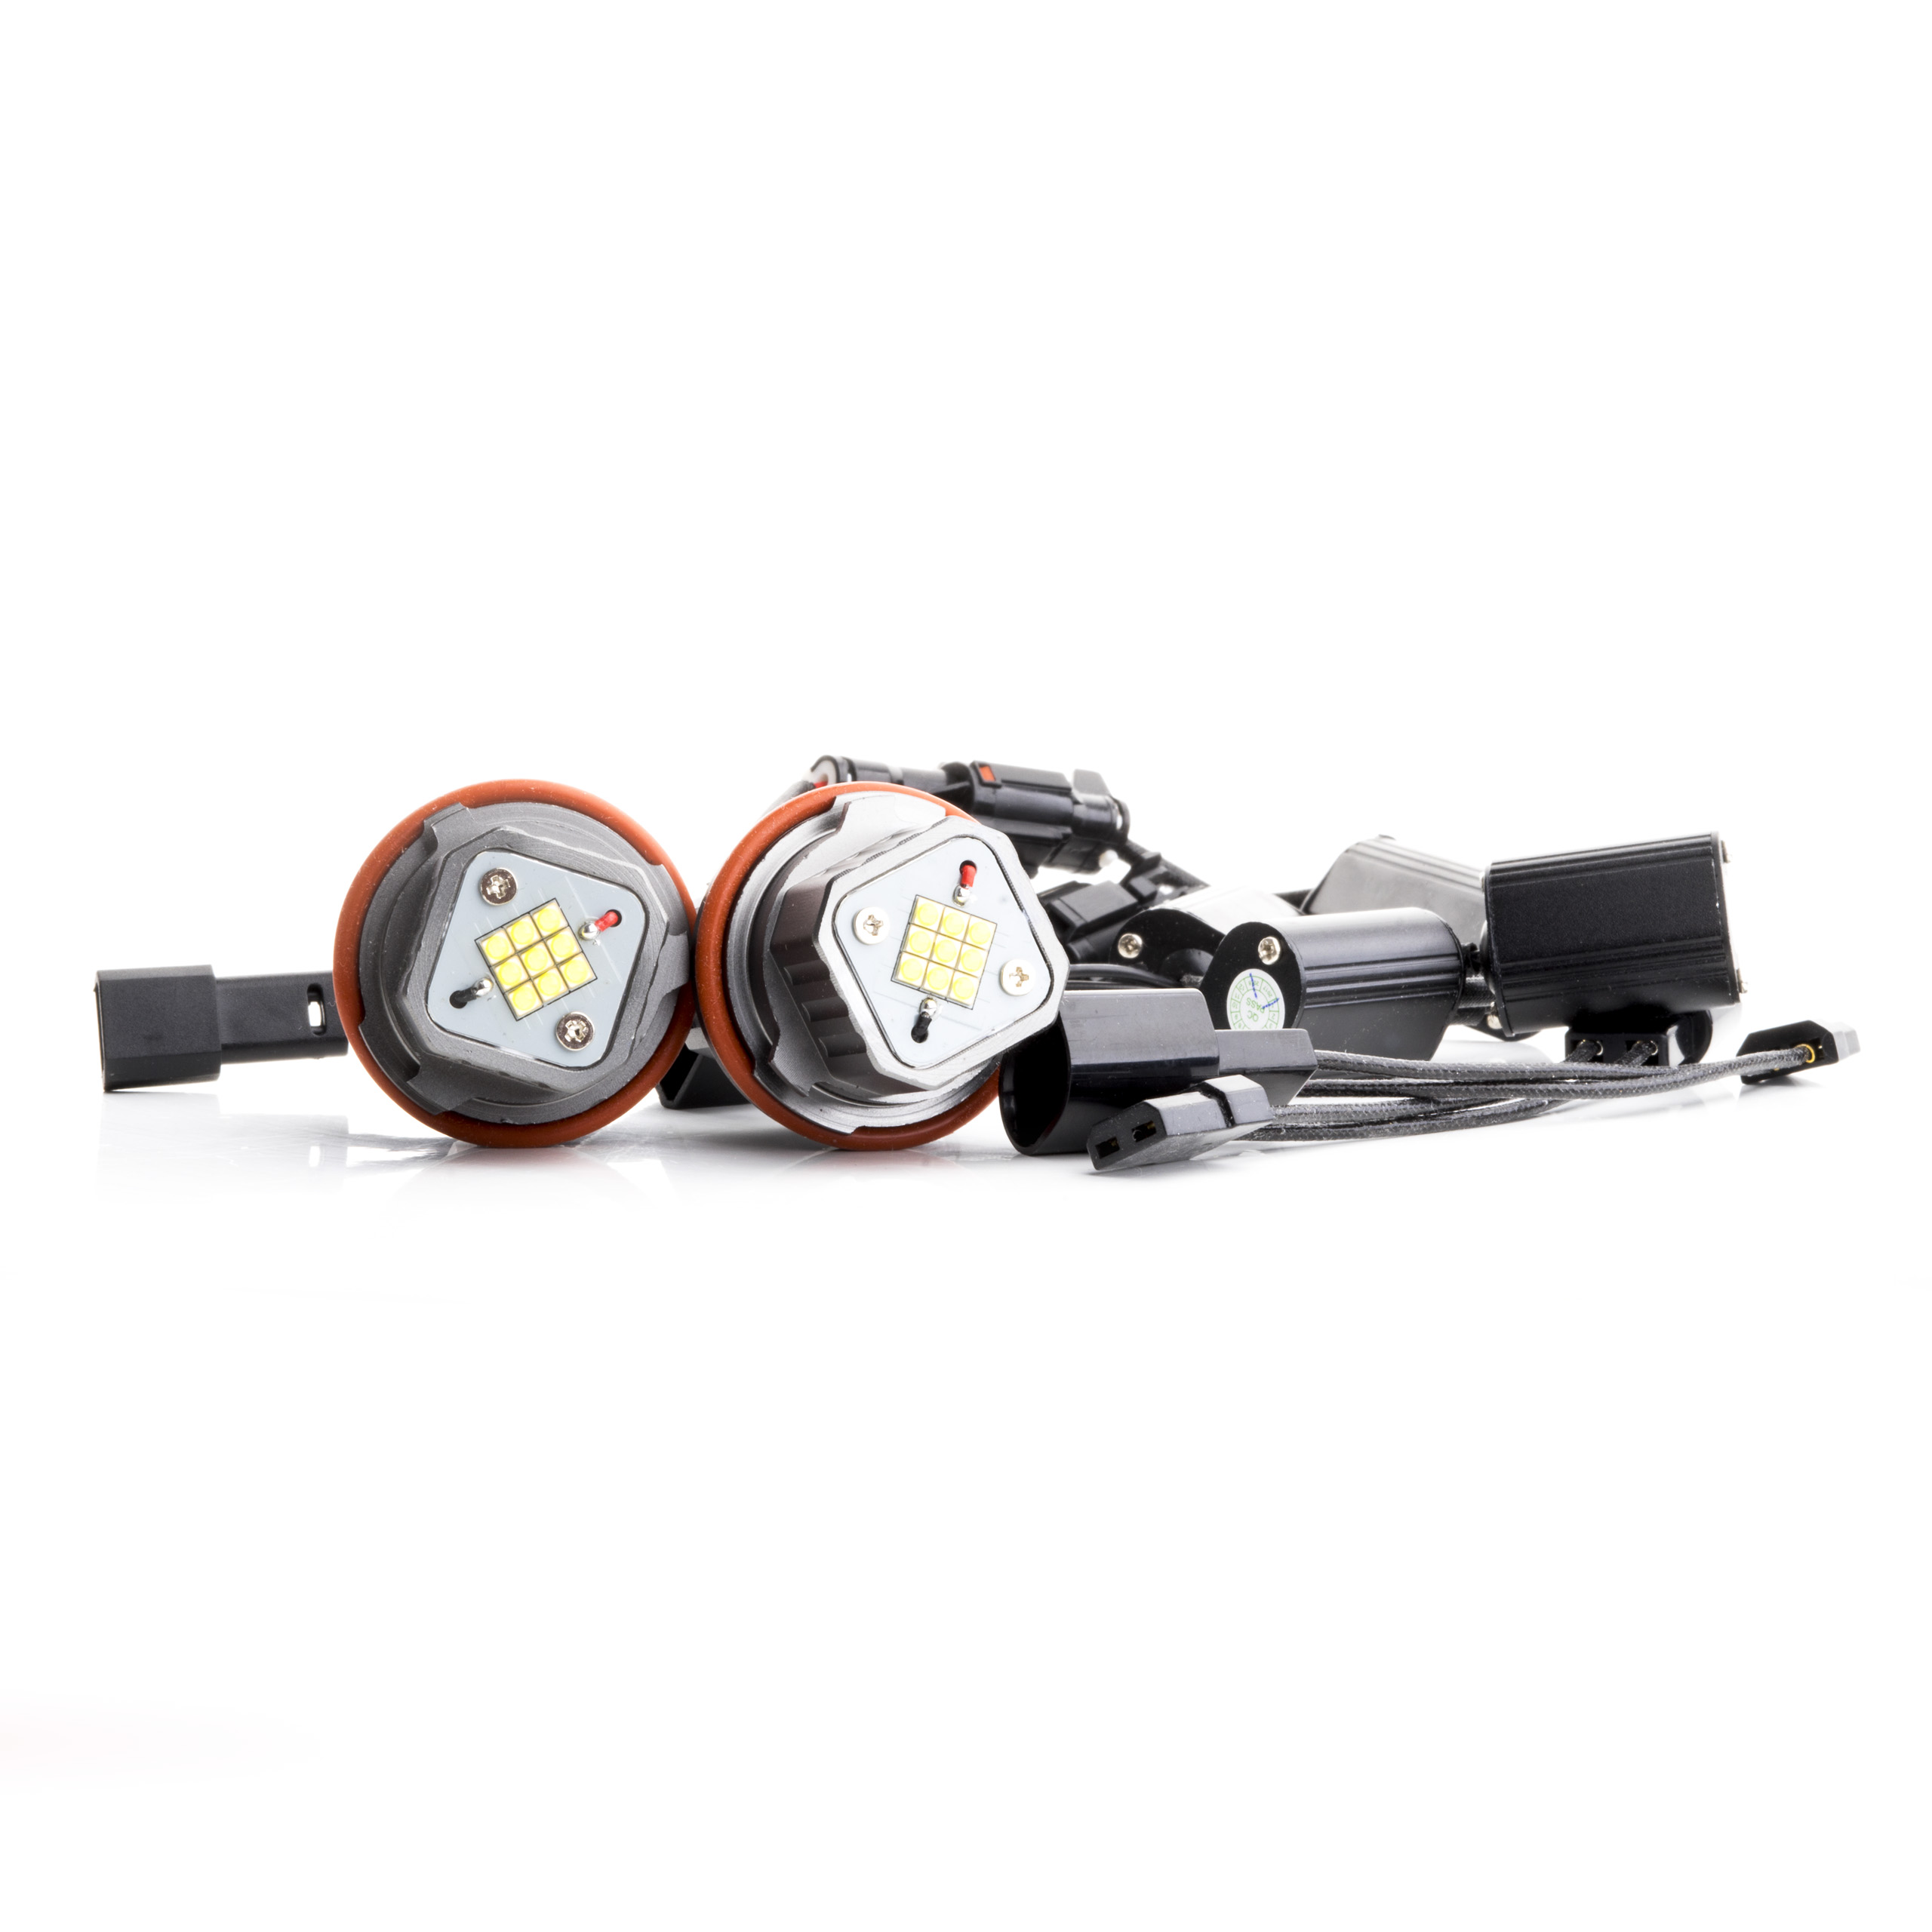 LED Markery 2 x 80W (OSRAM) do kroužků BMW 1 E87 (2004-2008)